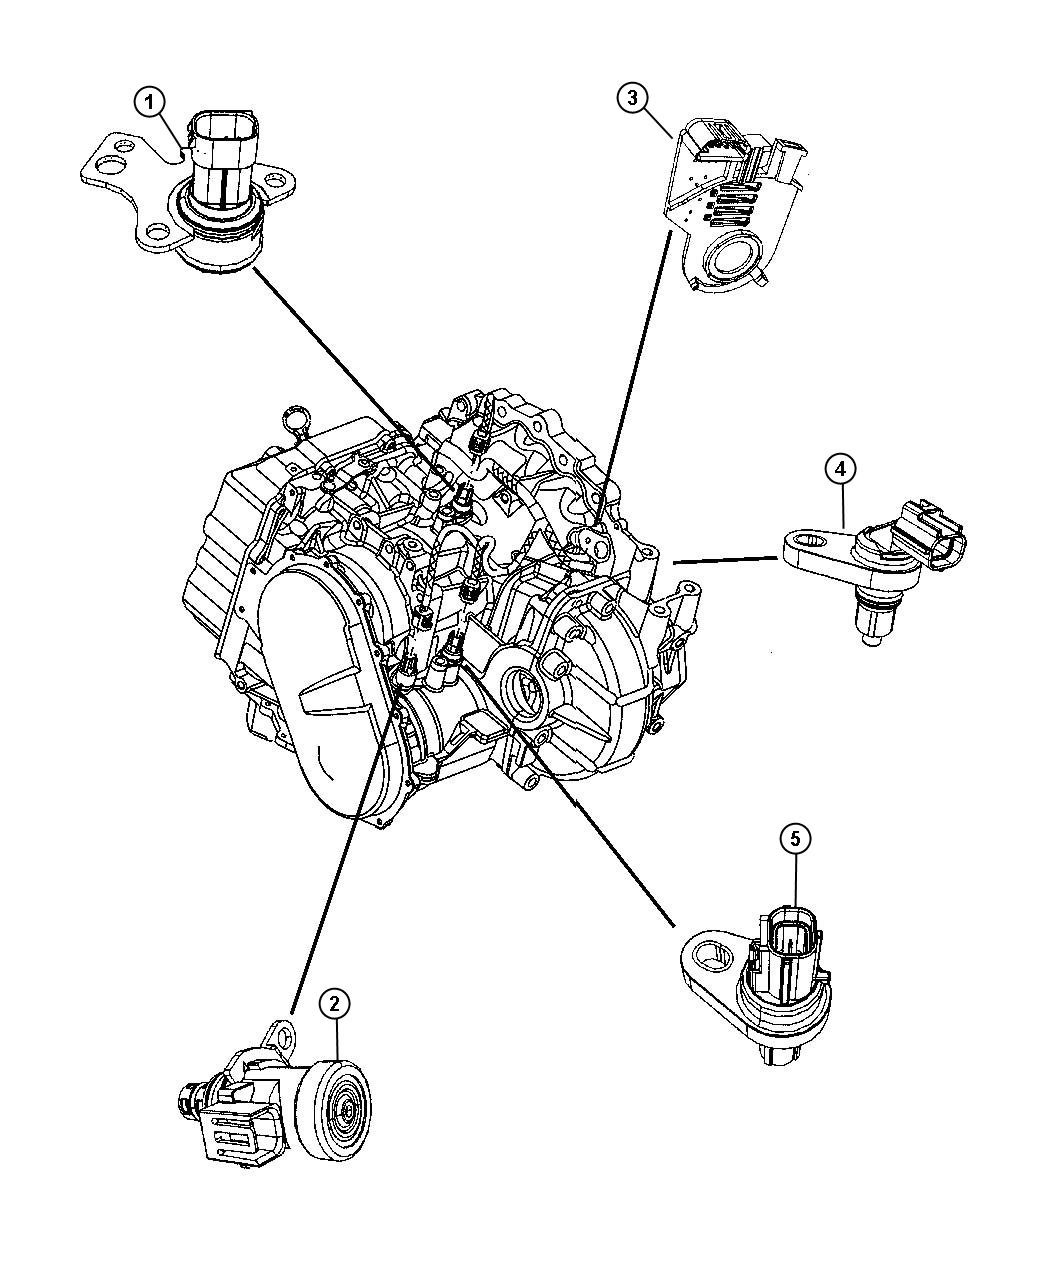 2007 dodge caravan sxt transmission wiring diagram